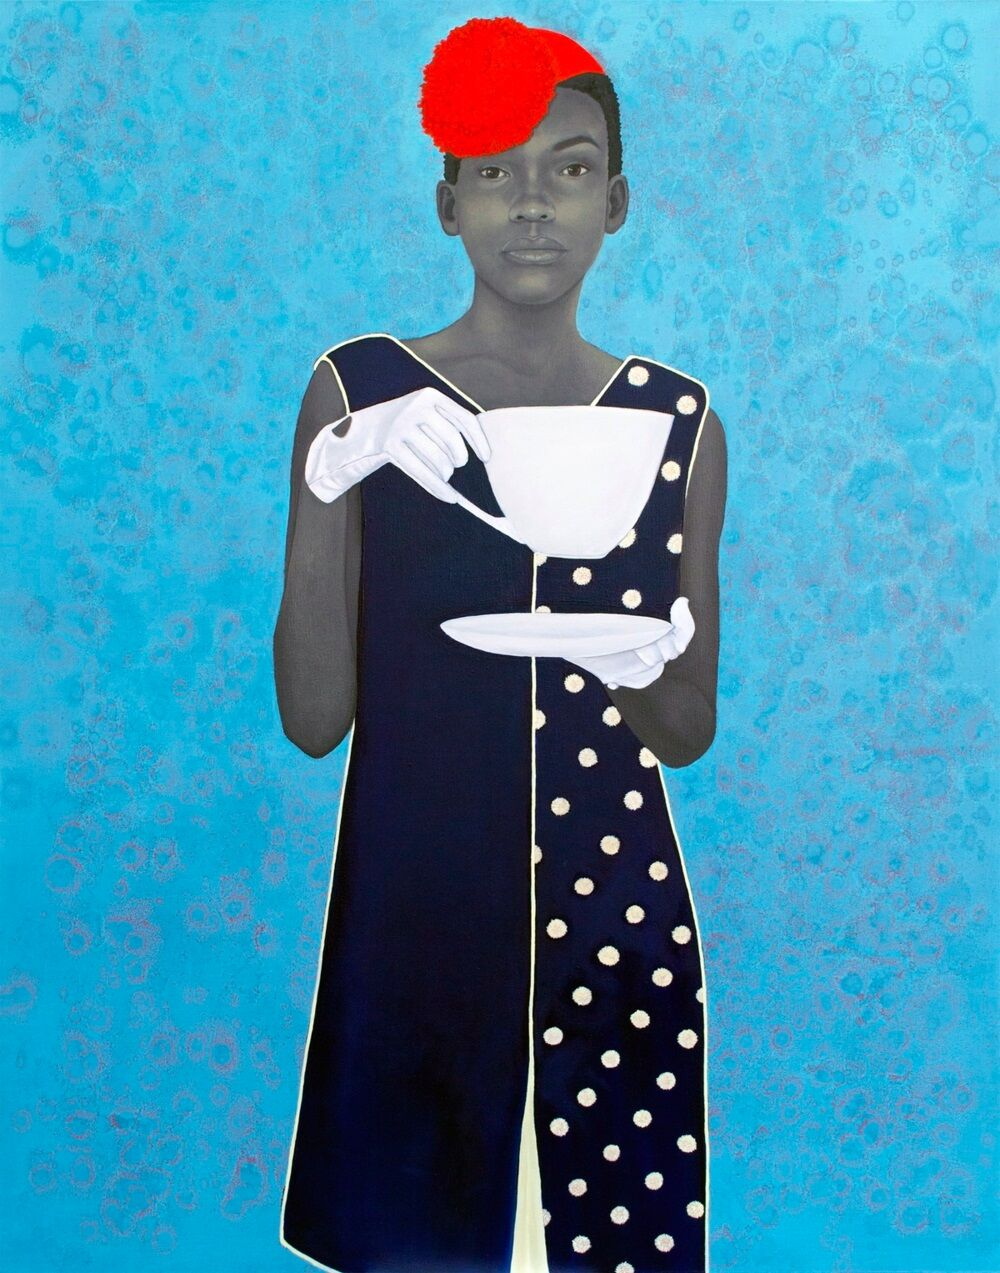 Amy Sherald, Miss Everything (Unsuppressed Deliverance), 2014, oil on canvas. 54 x 43 in. (137.2 x 109.2 cm). Public Collection, Smithsonian National Portrait Gallery, Washington, D.C. Courtesy the artist and Monique Meloche Gallery, Chicago.